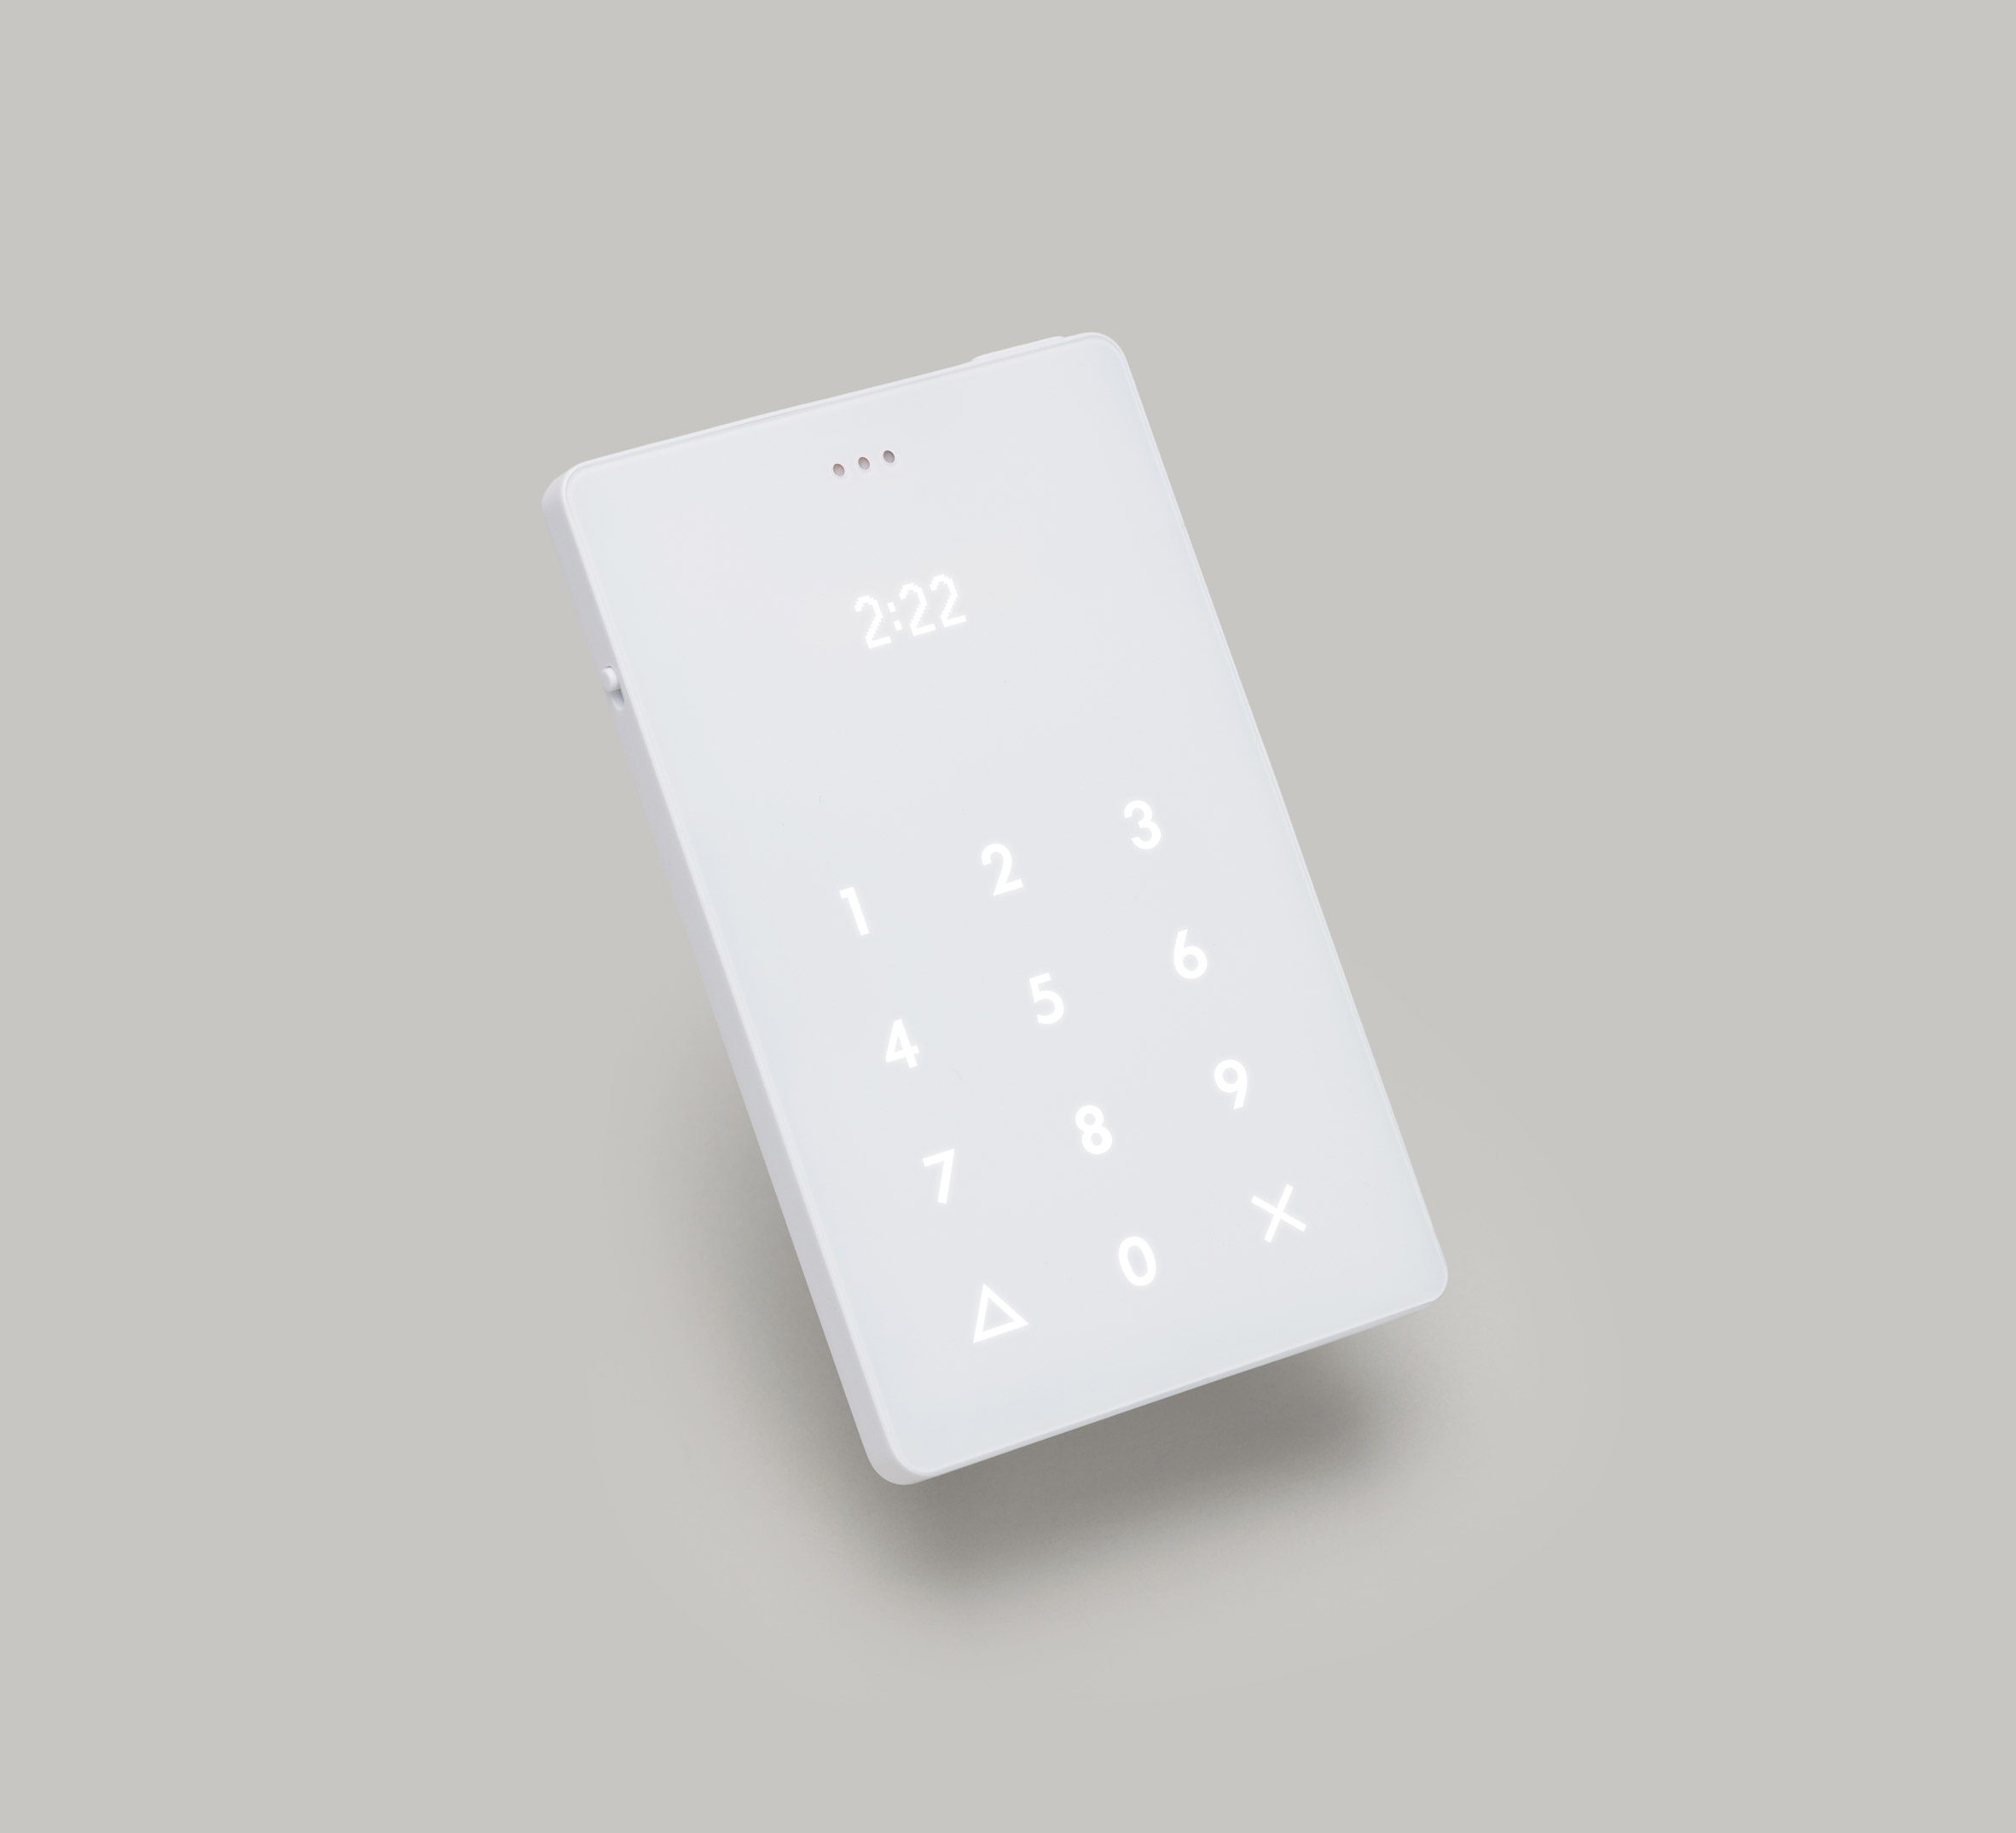 Minimalist Light Phone is designed to be used as little as possible